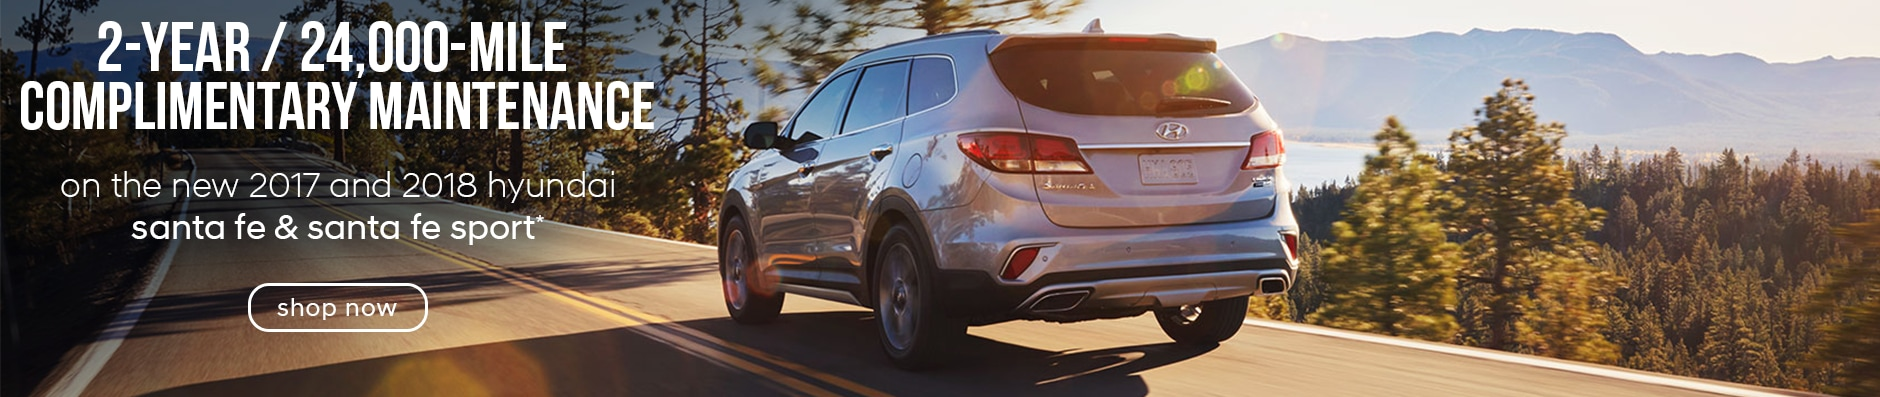 Hyundai Santa Fe and Santa Fe Sport Complimentary Maintenance Offer